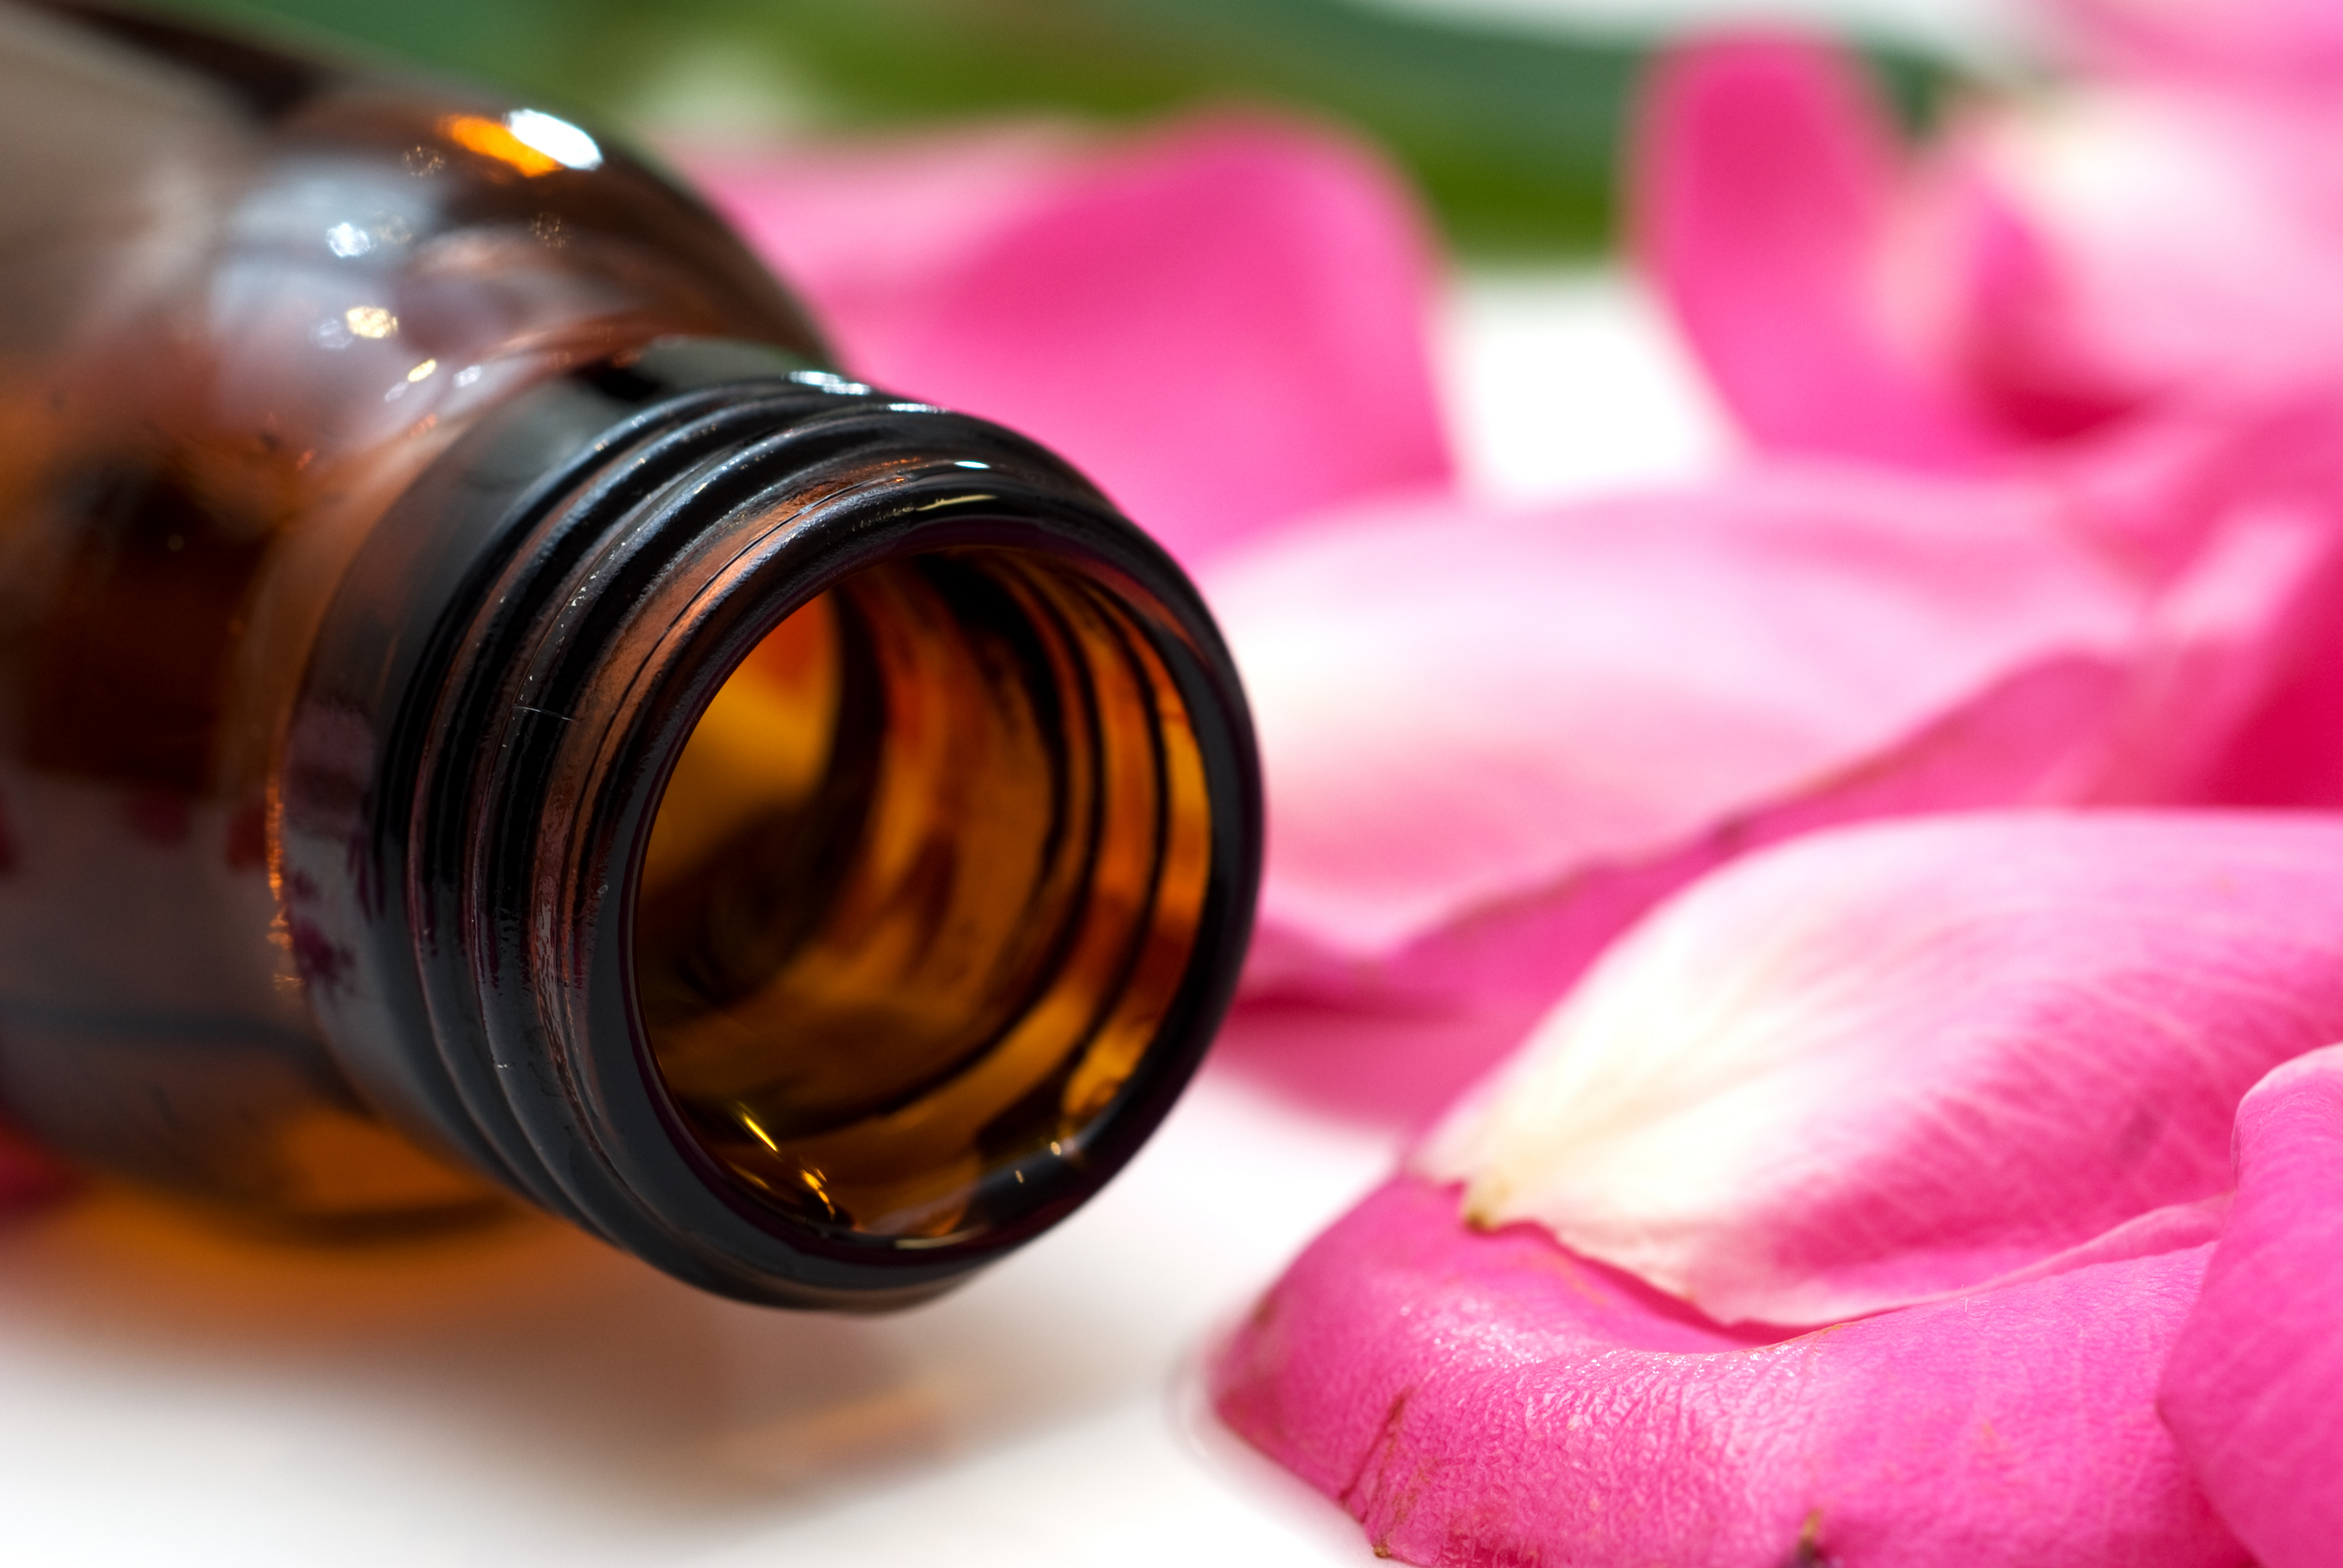 Four drops of rose oil #NaBloPoMo